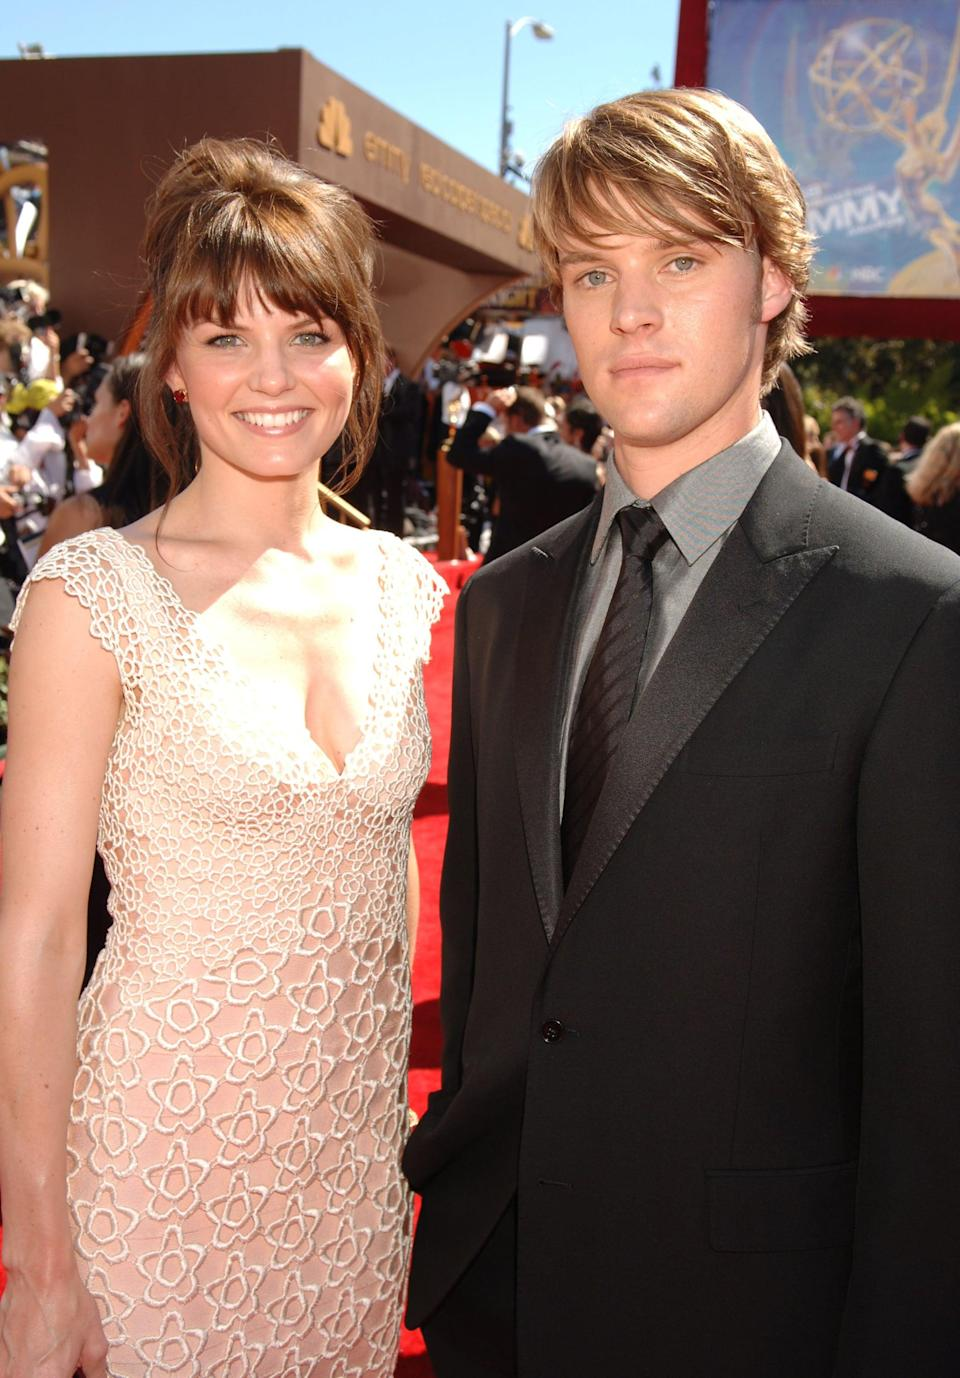 """<p>Jennifer and Jesse met on the set of <strong>House </strong>in 2004, and it wasn't long before they struck up a romance. They went on to date for three years - and even got engaged - before deciding to split, and their onscreen characters, Allison and Robert, ended up divorcing before Jennifer left the series in 2010.</p> <p>Following their split, <a href=""""http://people.com/celebrity/house-costars-call-off-engagement/"""" class=""""link rapid-noclick-resp"""" rel=""""nofollow noopener"""" target=""""_blank"""" data-ylk=""""slk:the exes released a statement"""">the exes released a statement</a> to <strong>People</strong> just months before they were due to get married. """"After much consideration, we have decided not to get married,'' they wrote. """"We are still very close, and we look forward to continuing to work together on <strong>House</strong>.''</p> <p>Since then, the two haven't explicitly discussed the end of their relationship, but Jesse told <strong>Time Out</strong> in October 2012 that <a href=""""http://www.timeout.com/chicago/tv/jesse-spencer-interview"""" class=""""link rapid-noclick-resp"""" rel=""""nofollow noopener"""" target=""""_blank"""" data-ylk=""""slk:he probably wouldn't date another actor"""">he probably wouldn't date another actor</a>. """"All of my girlfriends have been actors, and I've realized that maybe it's not for me - and find something else outside of the industry,"""" he said. <br></p>"""